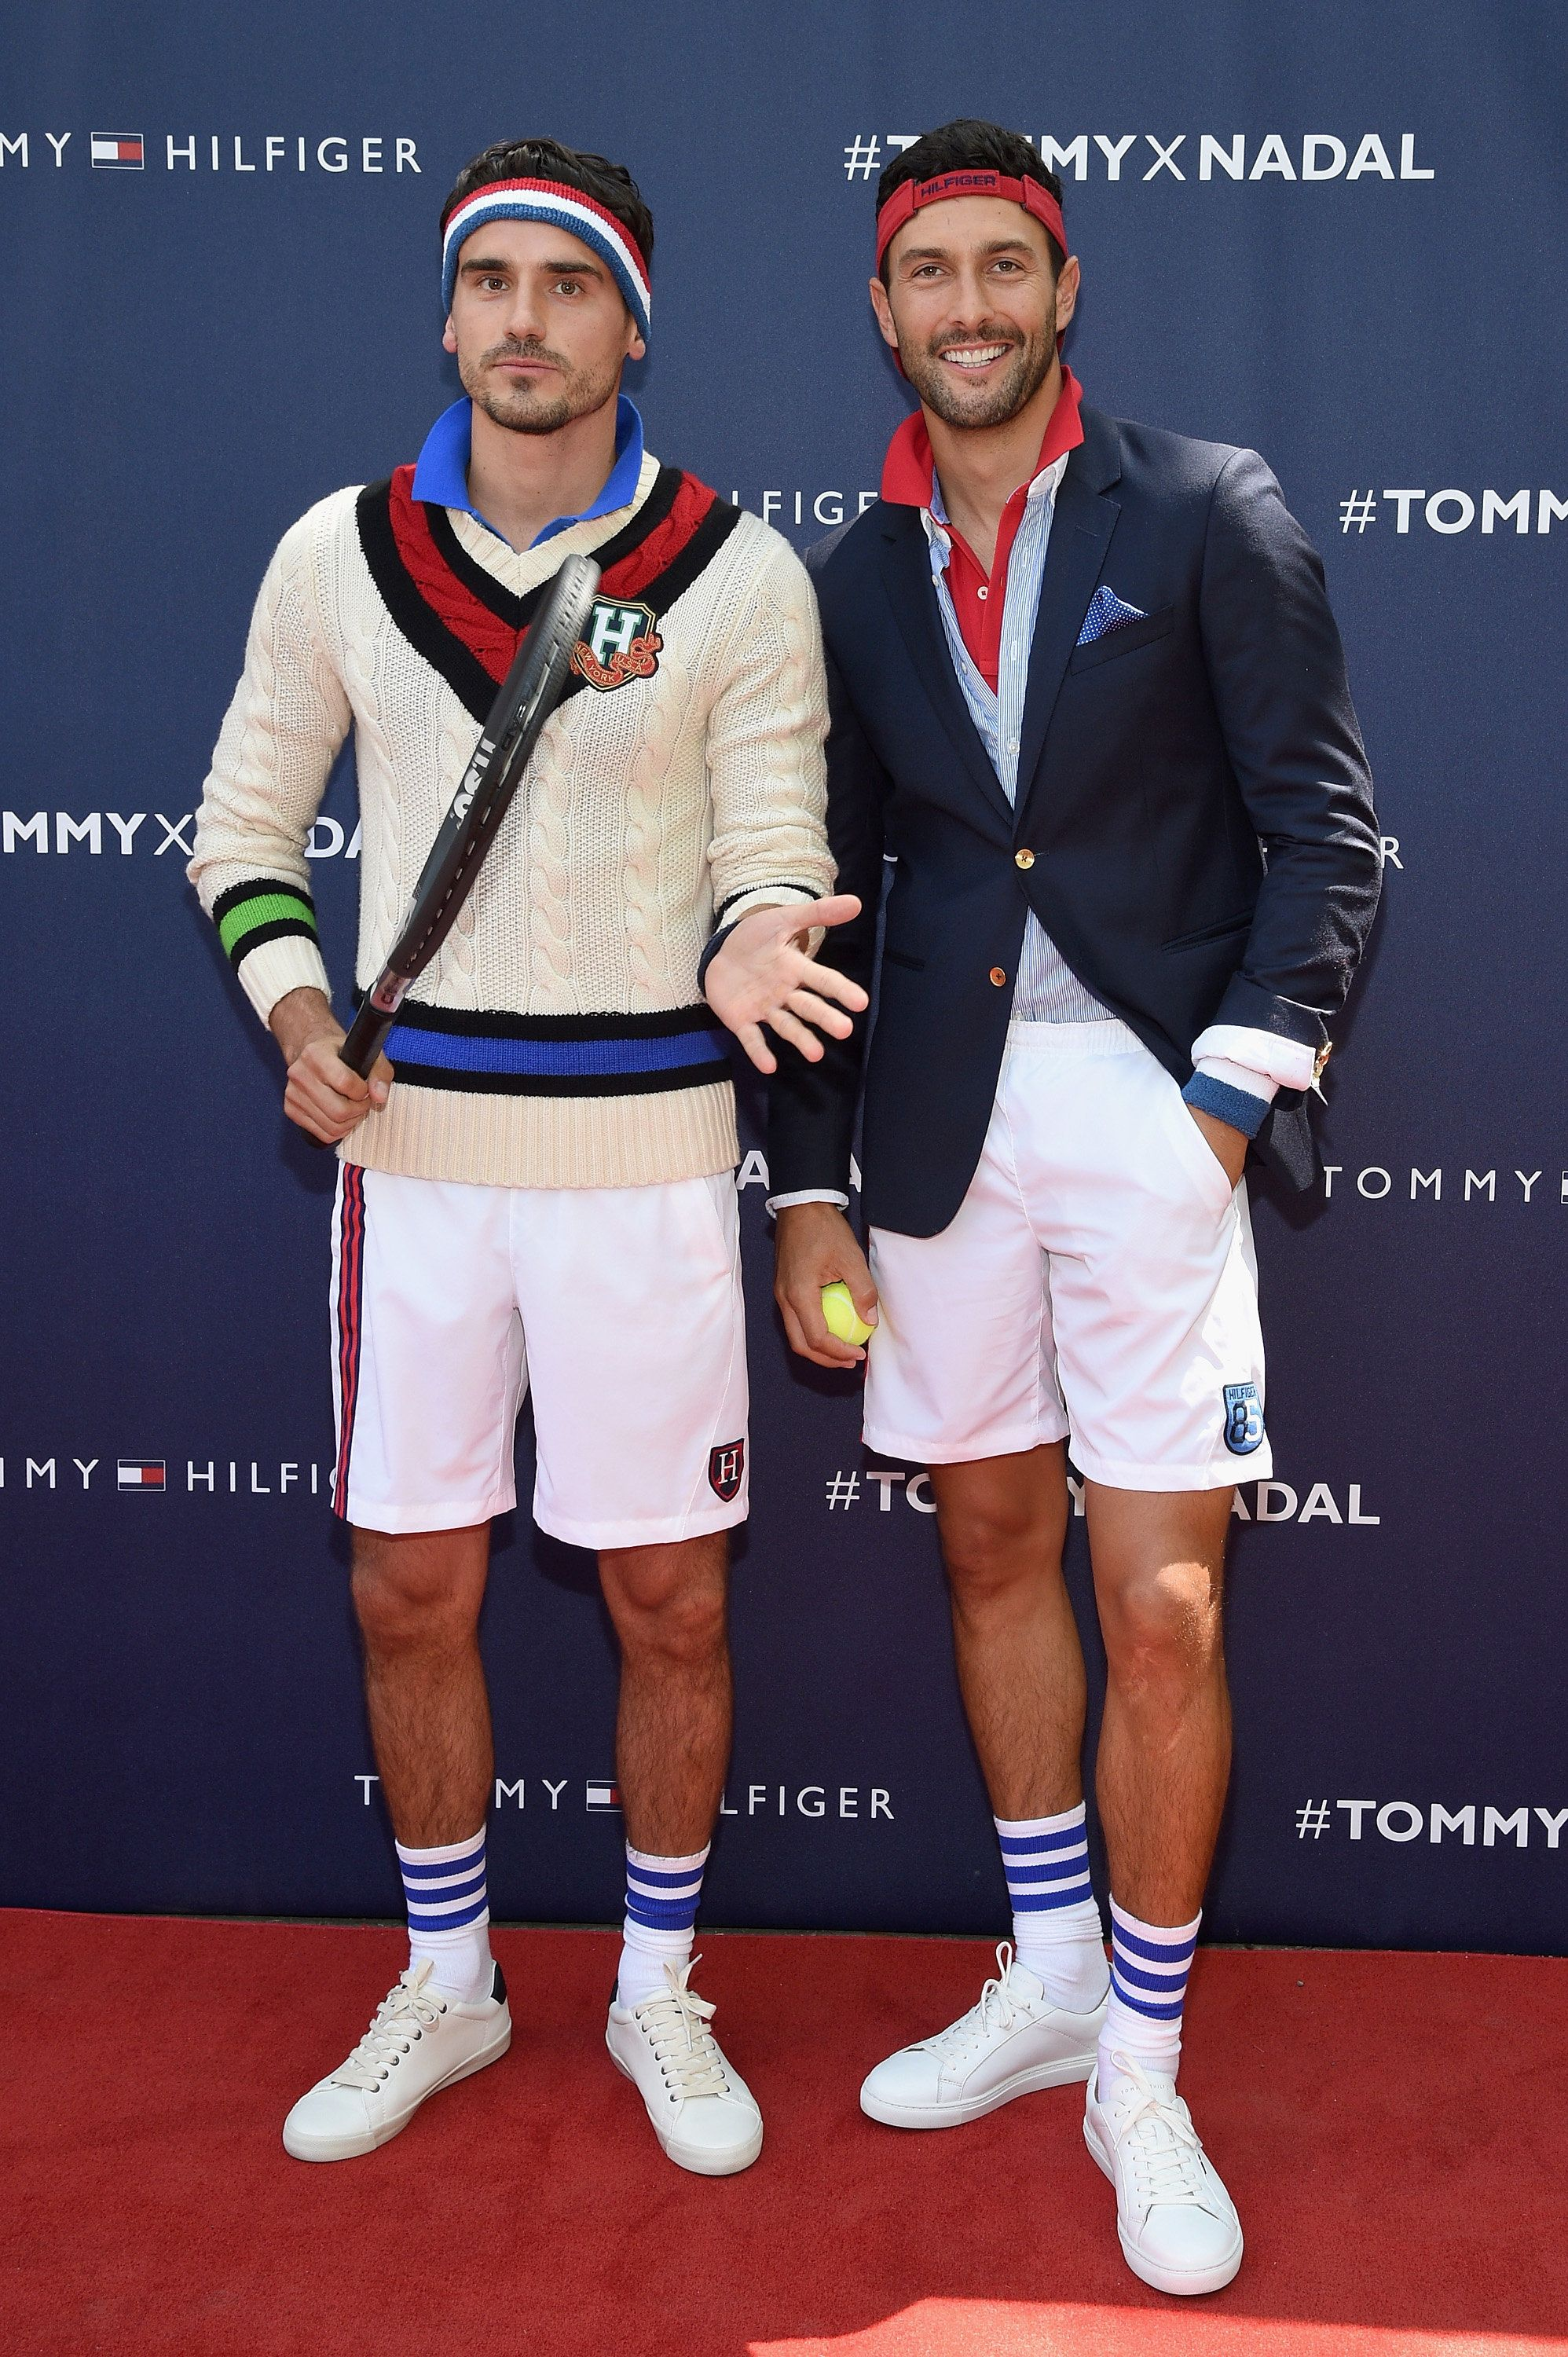 NEW YORK, NY - AUGUST 25:  Models Arthur Kulkov and Noah Mills attend the Tommy Hilfiger and Rafael Nadal Global Brand Ambassadorship Launch  at Bryant Park on August 25, 2015 in New York City.  (Photo by Mike Coppola/Getty Images for Tommy Hilfiger)